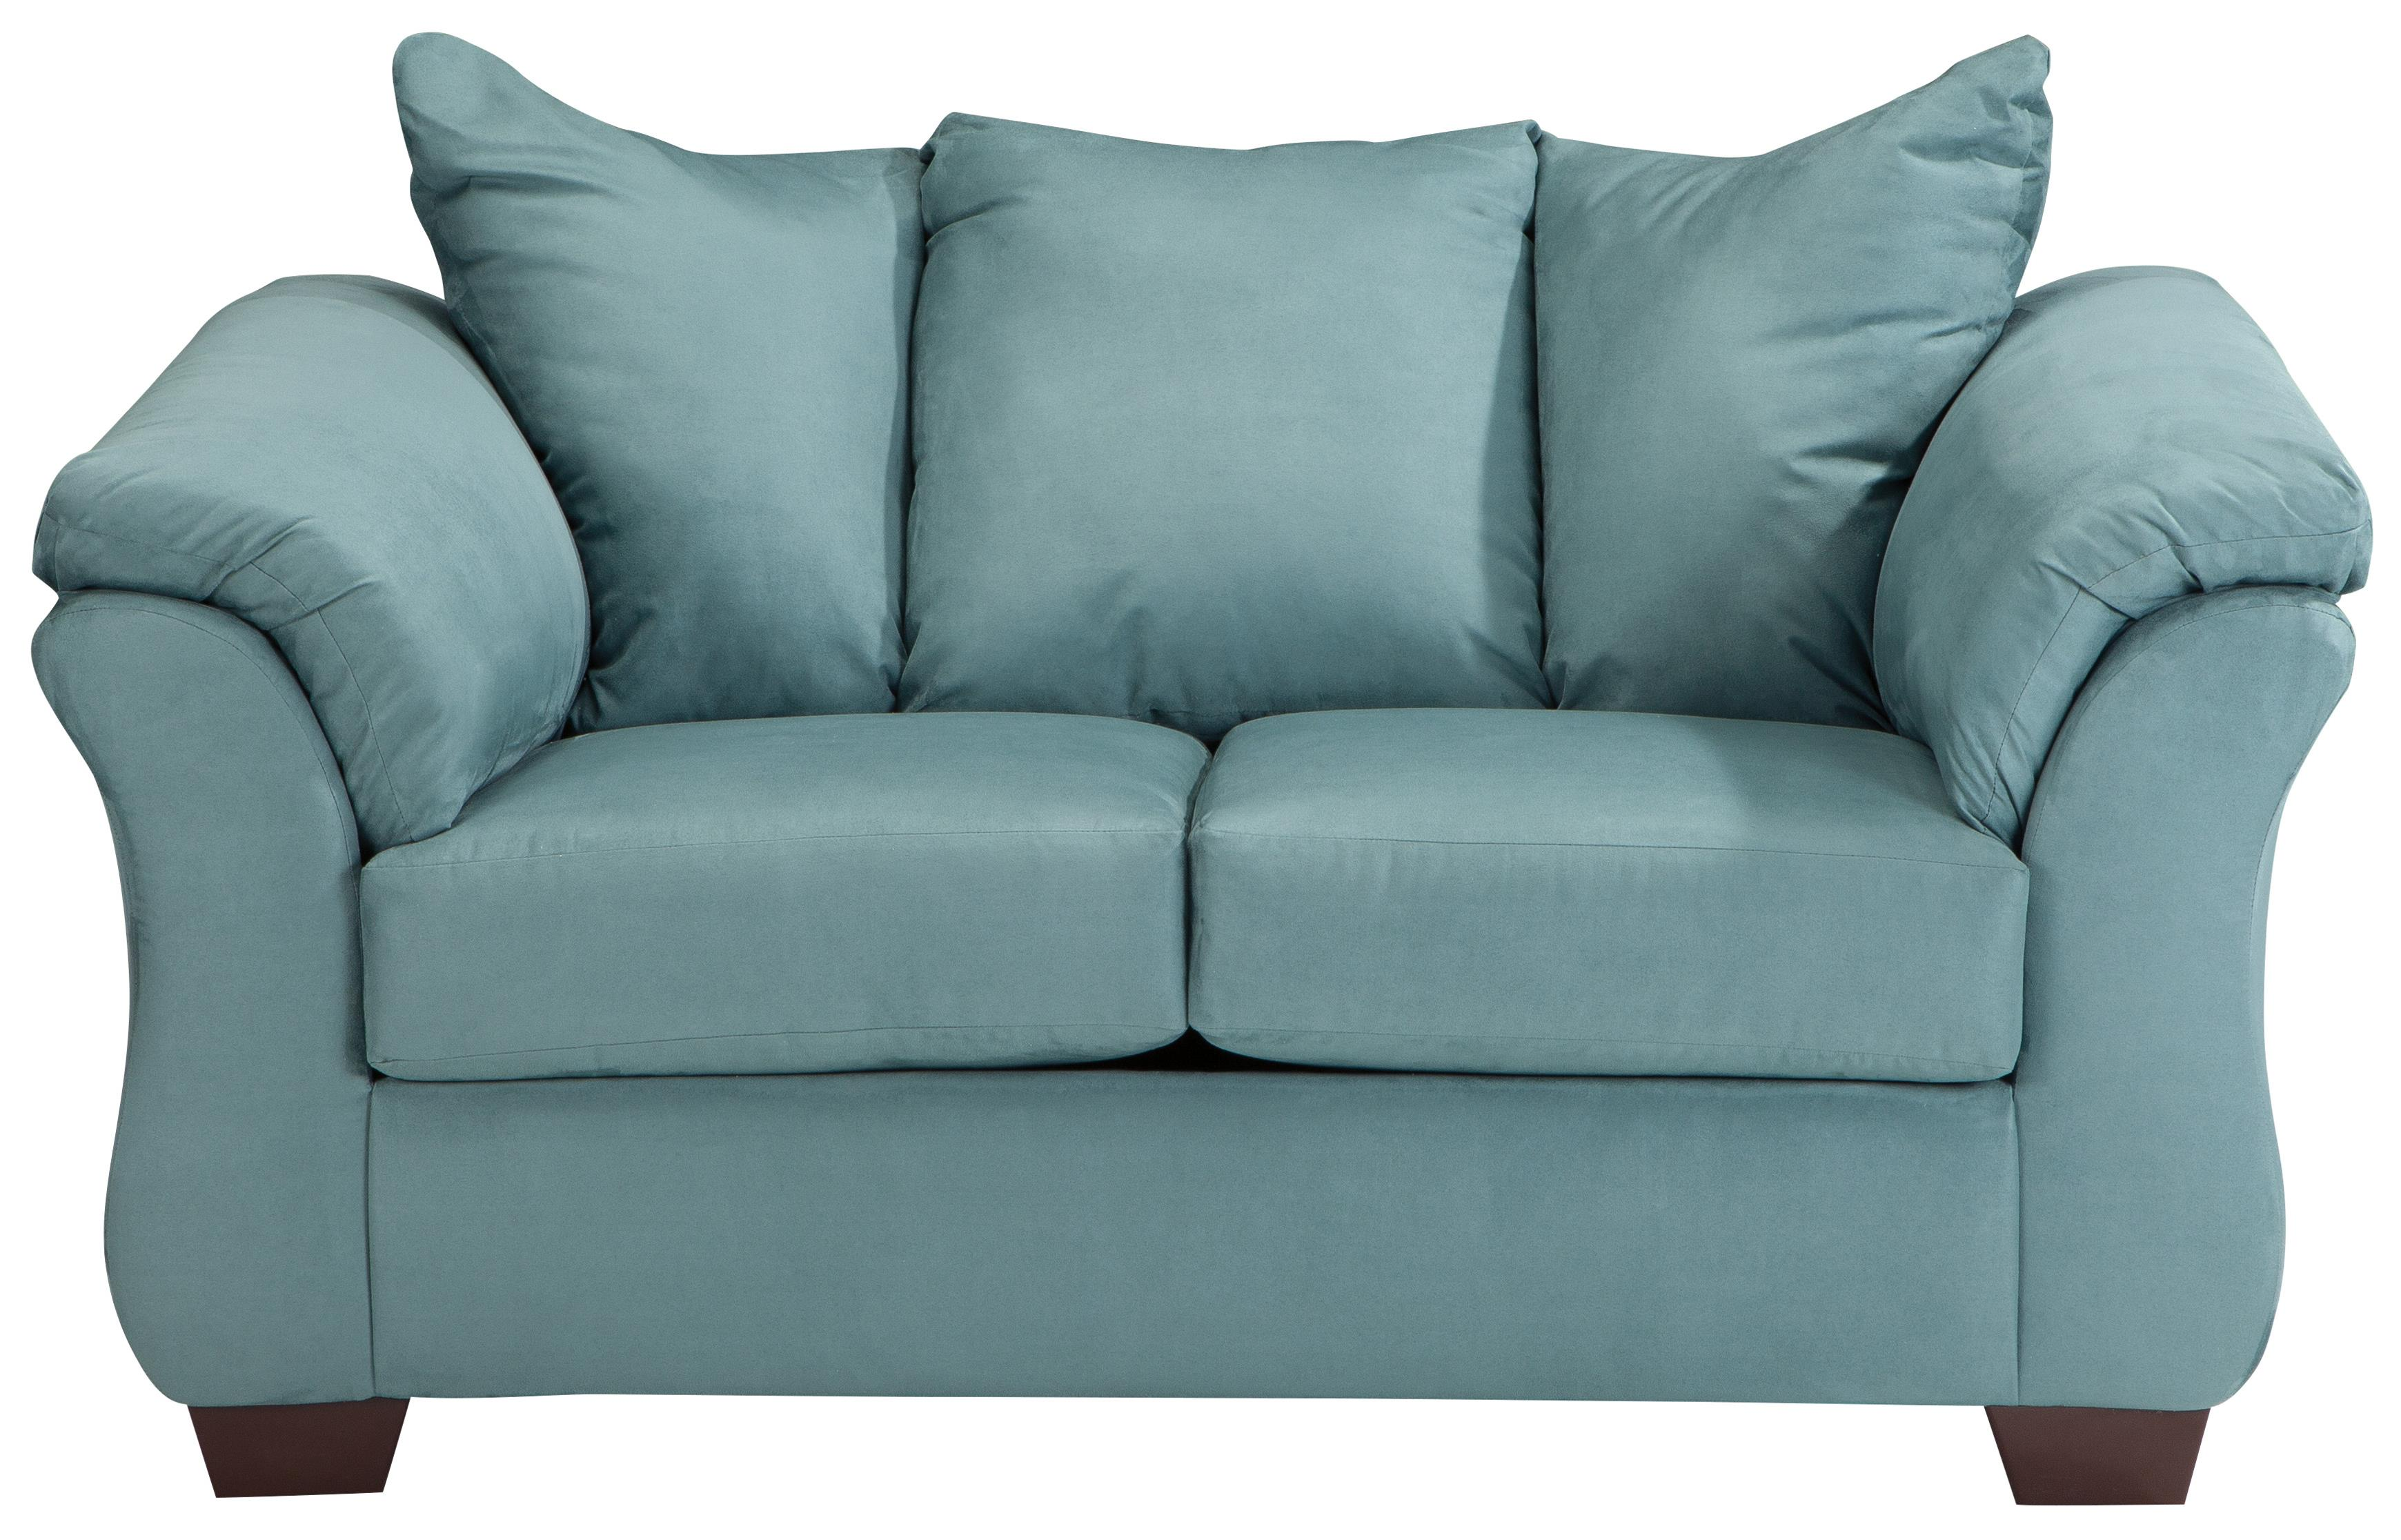 Signature Design by Ashley Darcy - Sky Stationary Loveseat - Item Number: 7500635